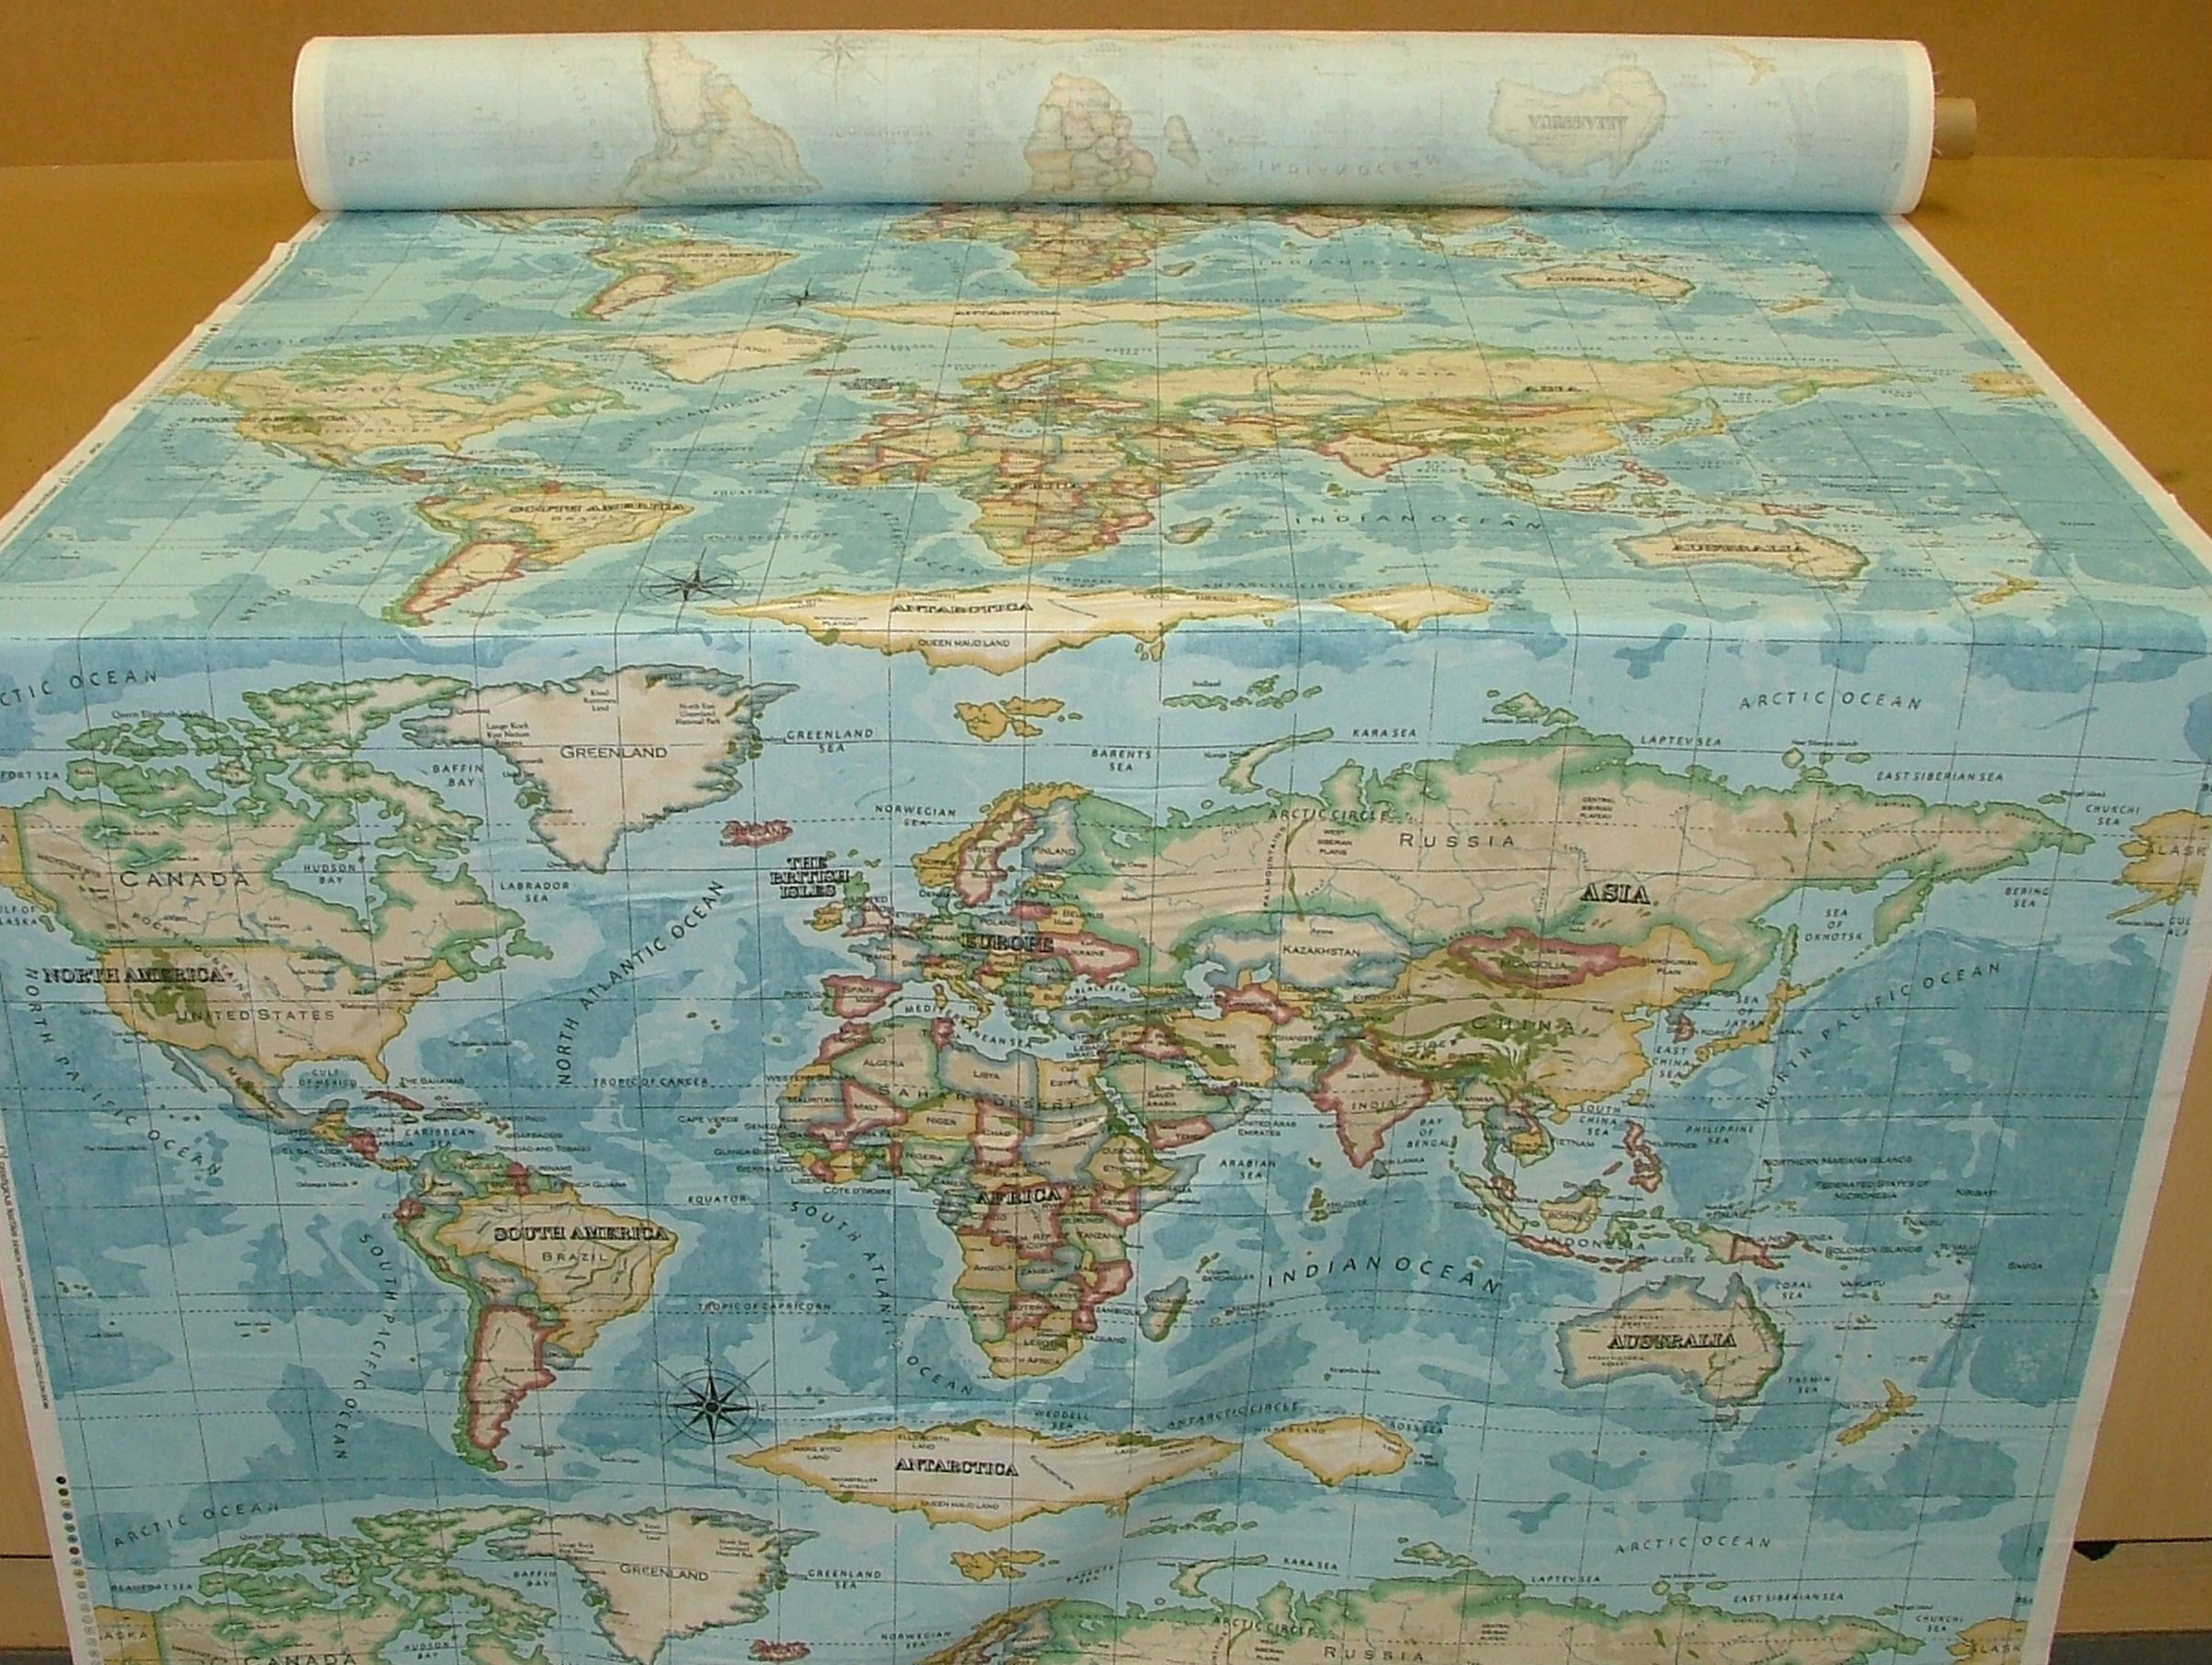 World map upholstry range prestigious atlas world map azure world map upholstry range prestigious atlas world map azure prestigious designer fabric gumiabroncs Choice Image